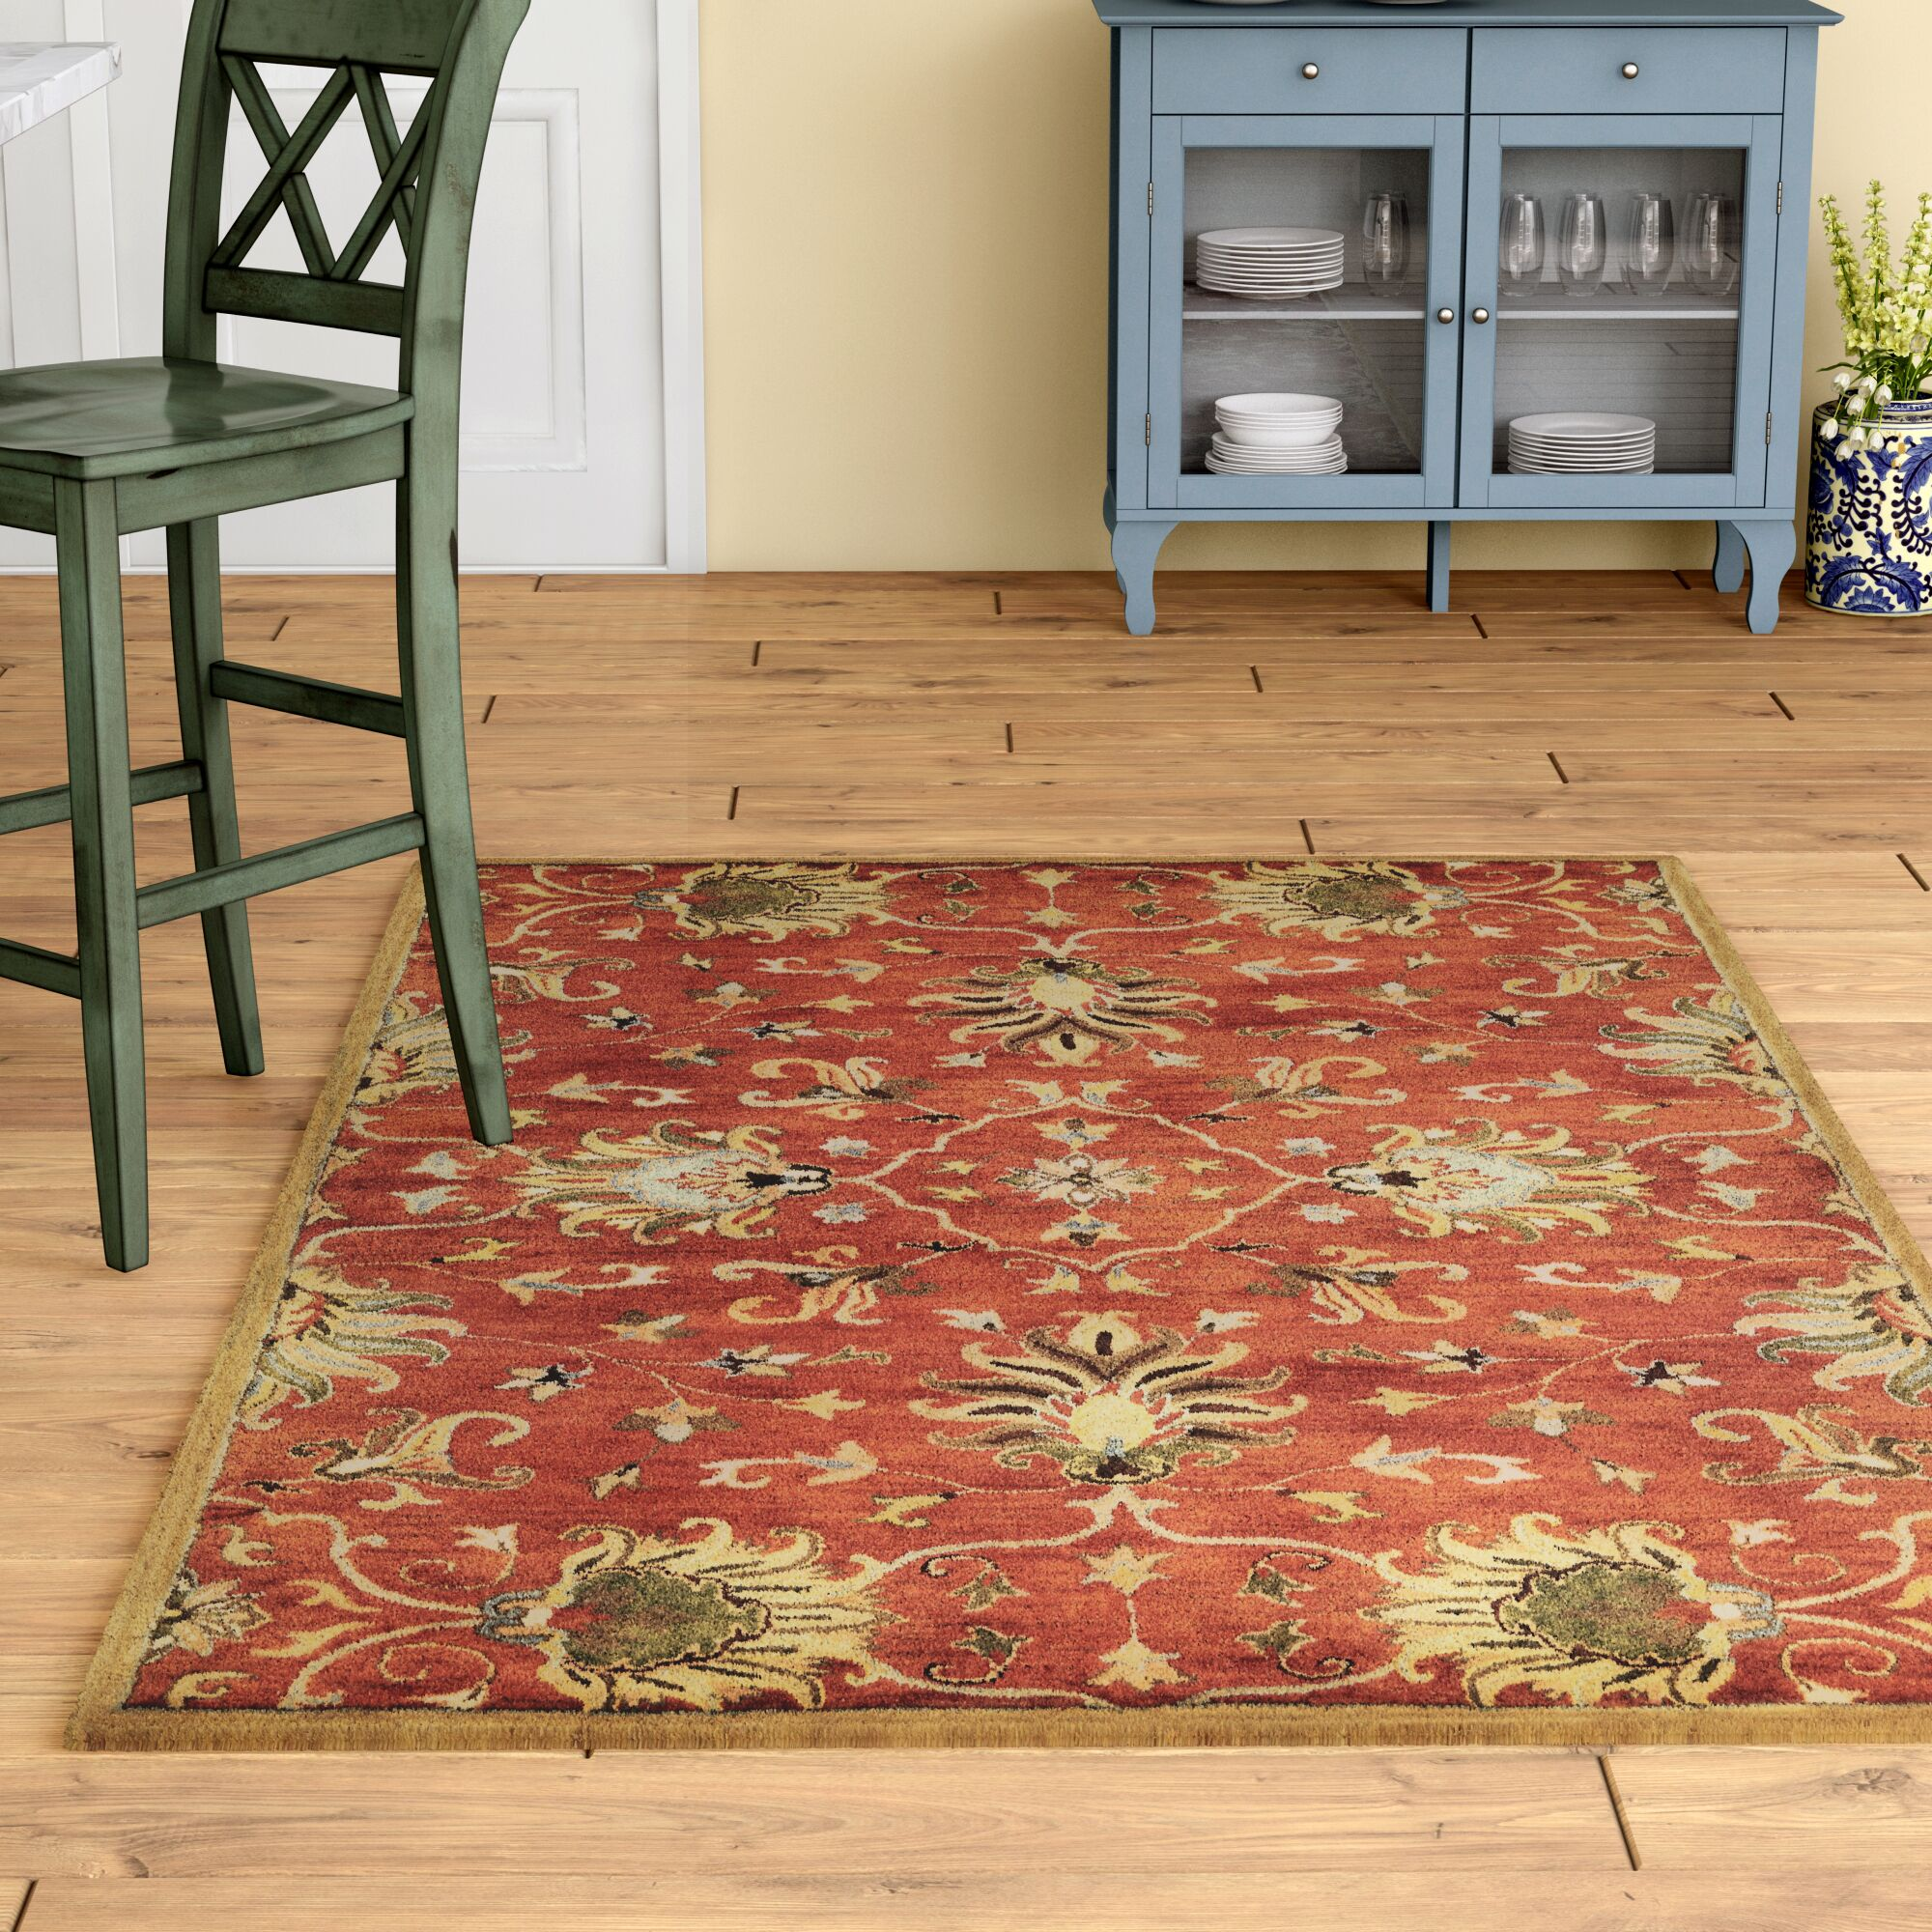 Statler Sienna Agra Hand-Woven Wool Area Rug Rug Size: Rectangle 3'3